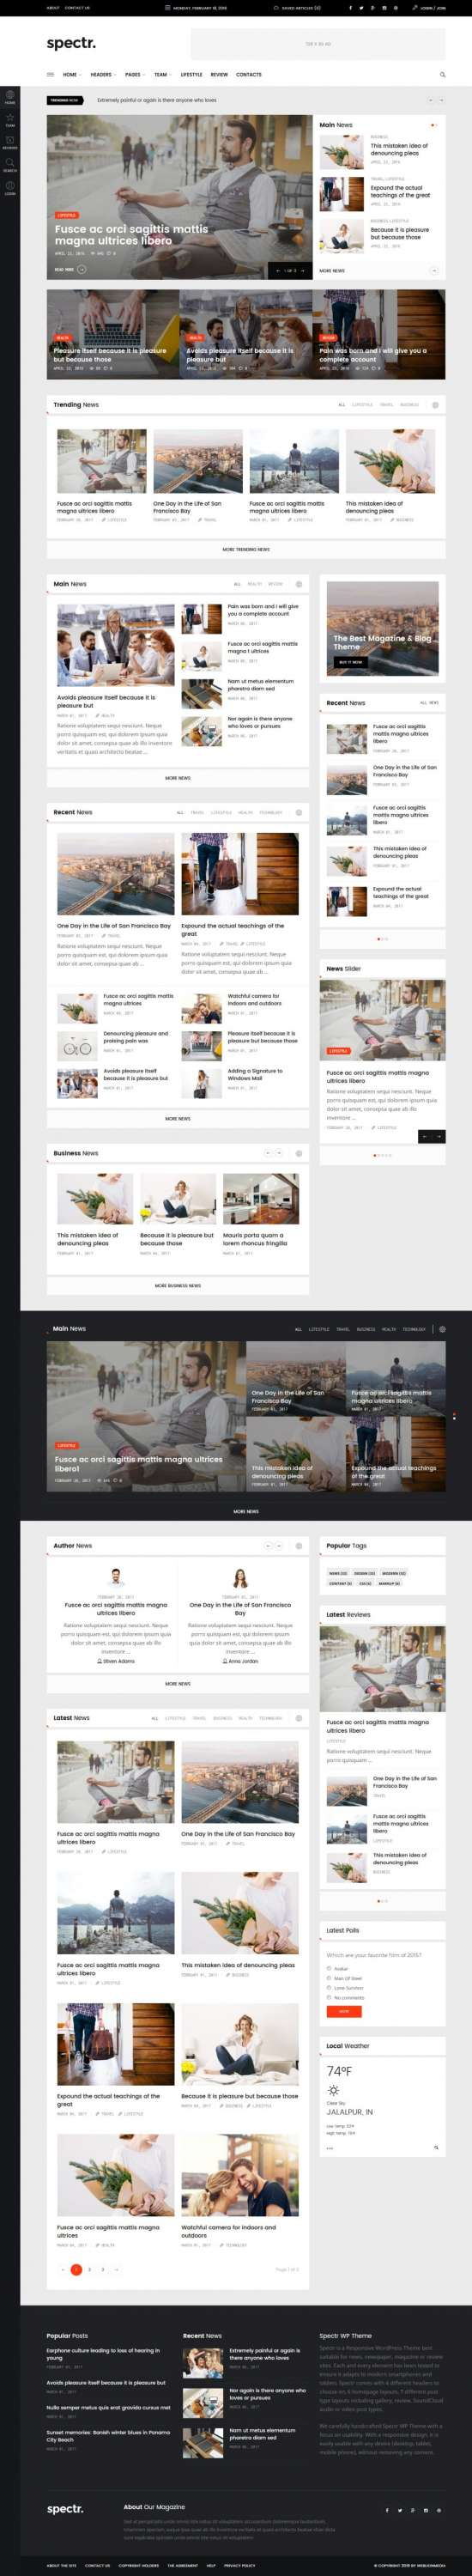 spectr wordpress theme 01 550x3000 - Spectr WordPress Theme